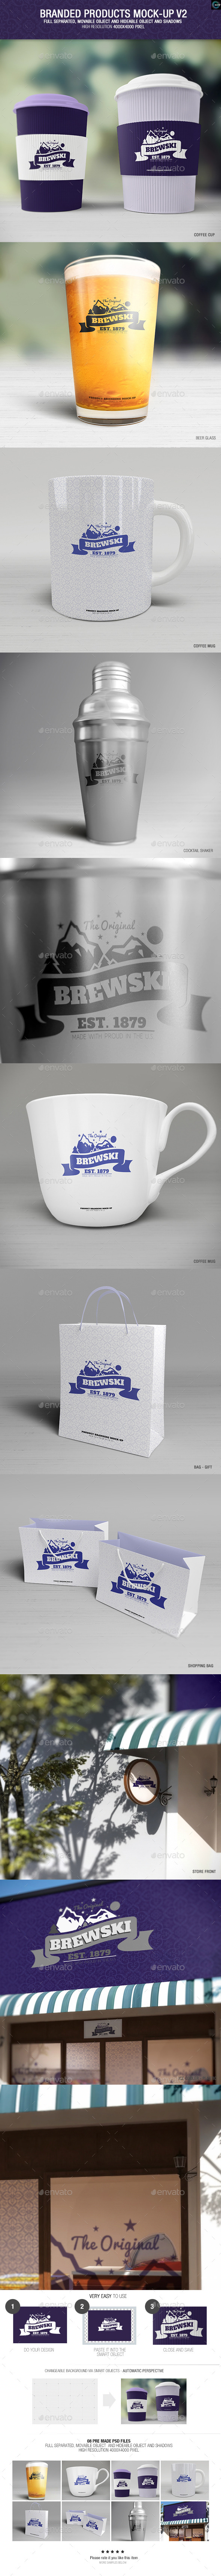 GraphicRiver Branded Products Mock-up V2 10377431